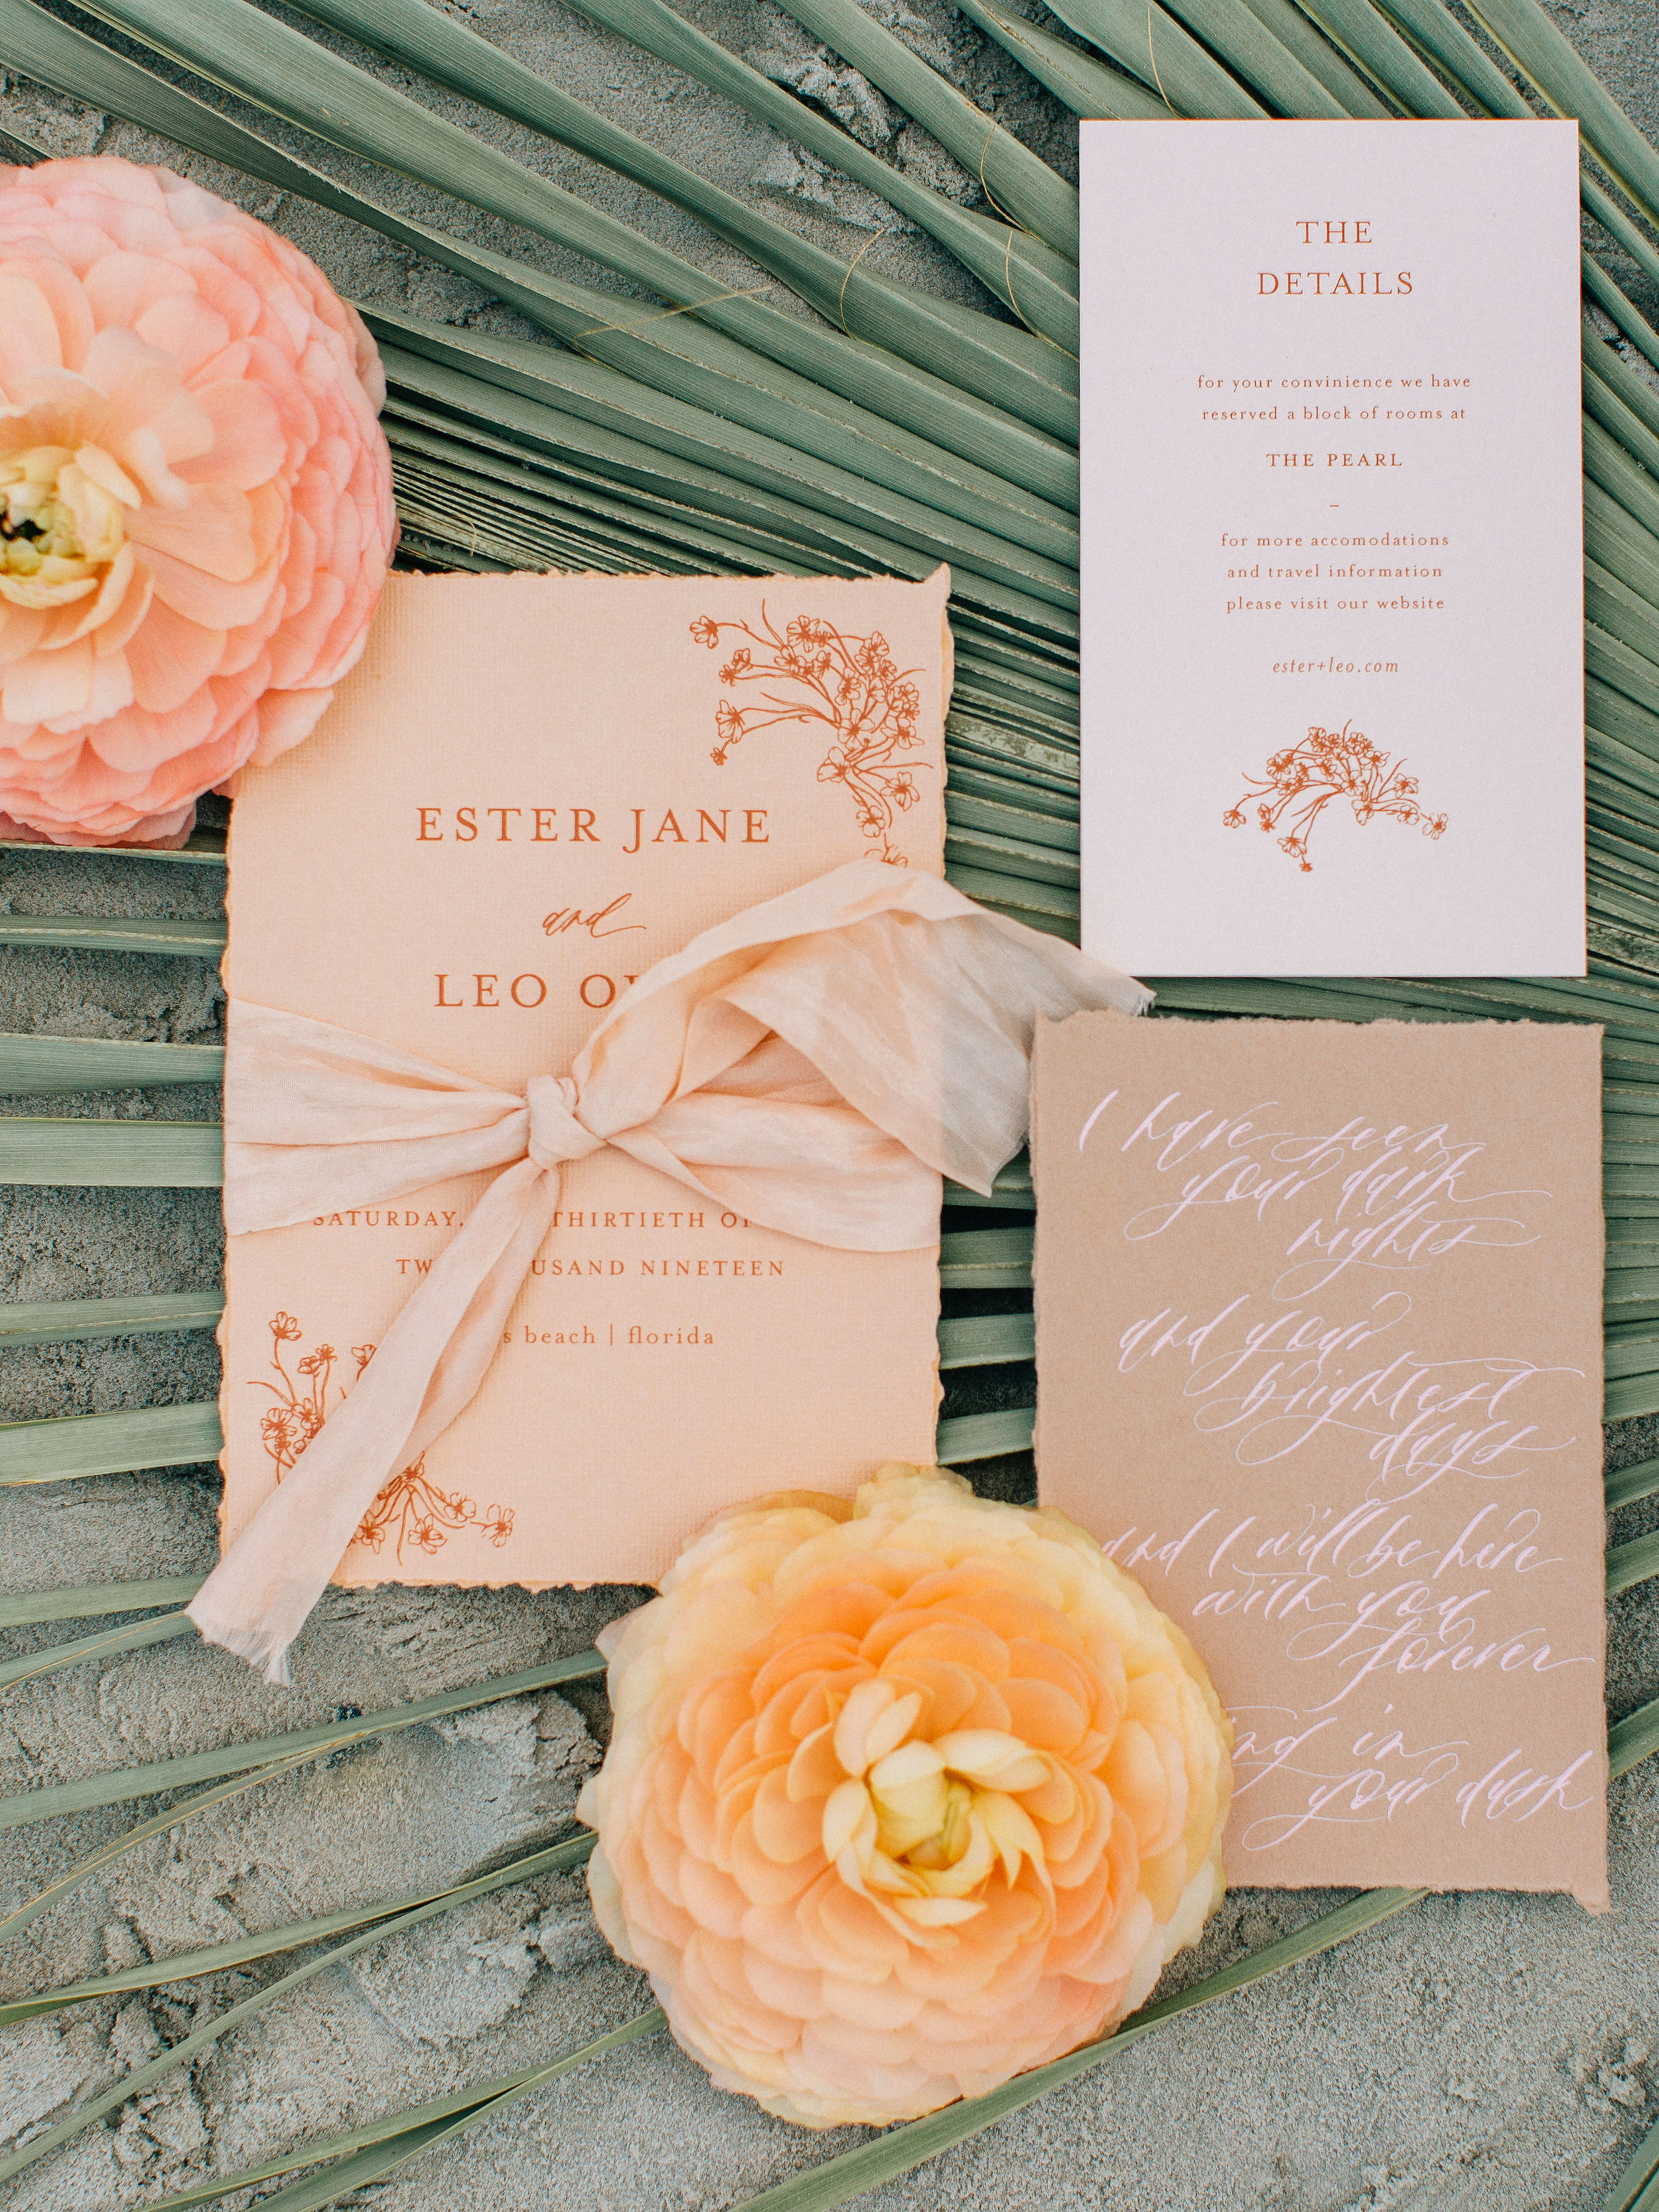 These gorgeous calligraphy invitations are the perfect way to add a touch of personality to your wedding! We love how they incorporated the couple's color scheme into the invites.